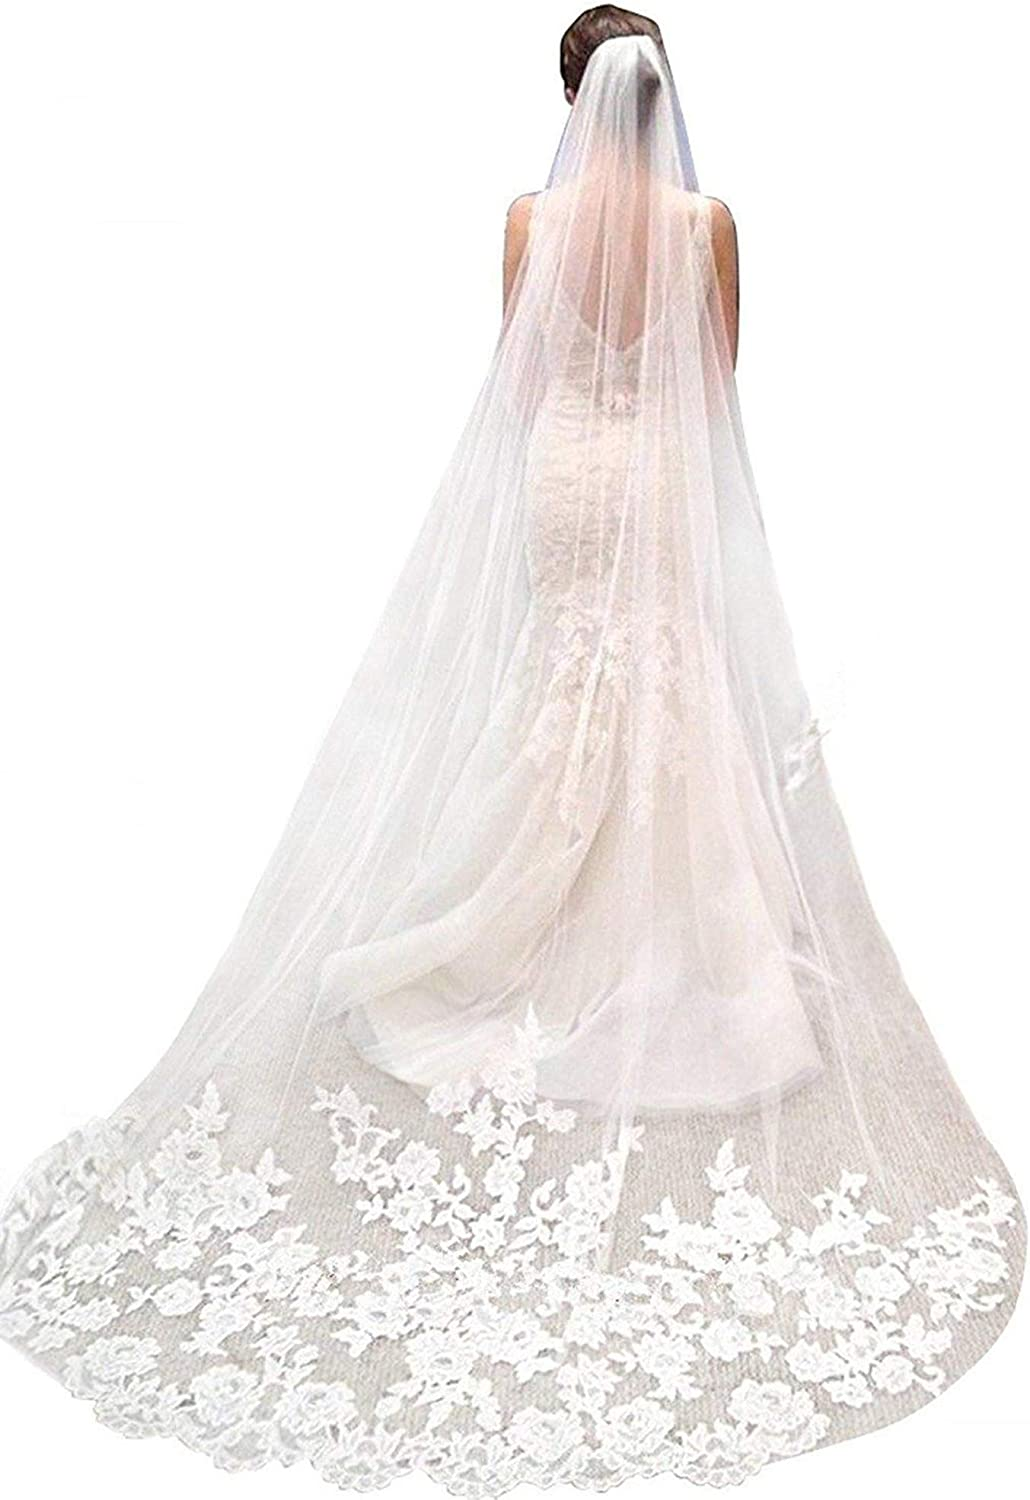 Erosebridal 2 tier Lace Applique Embroidery Edge Wedding Veils with Comb